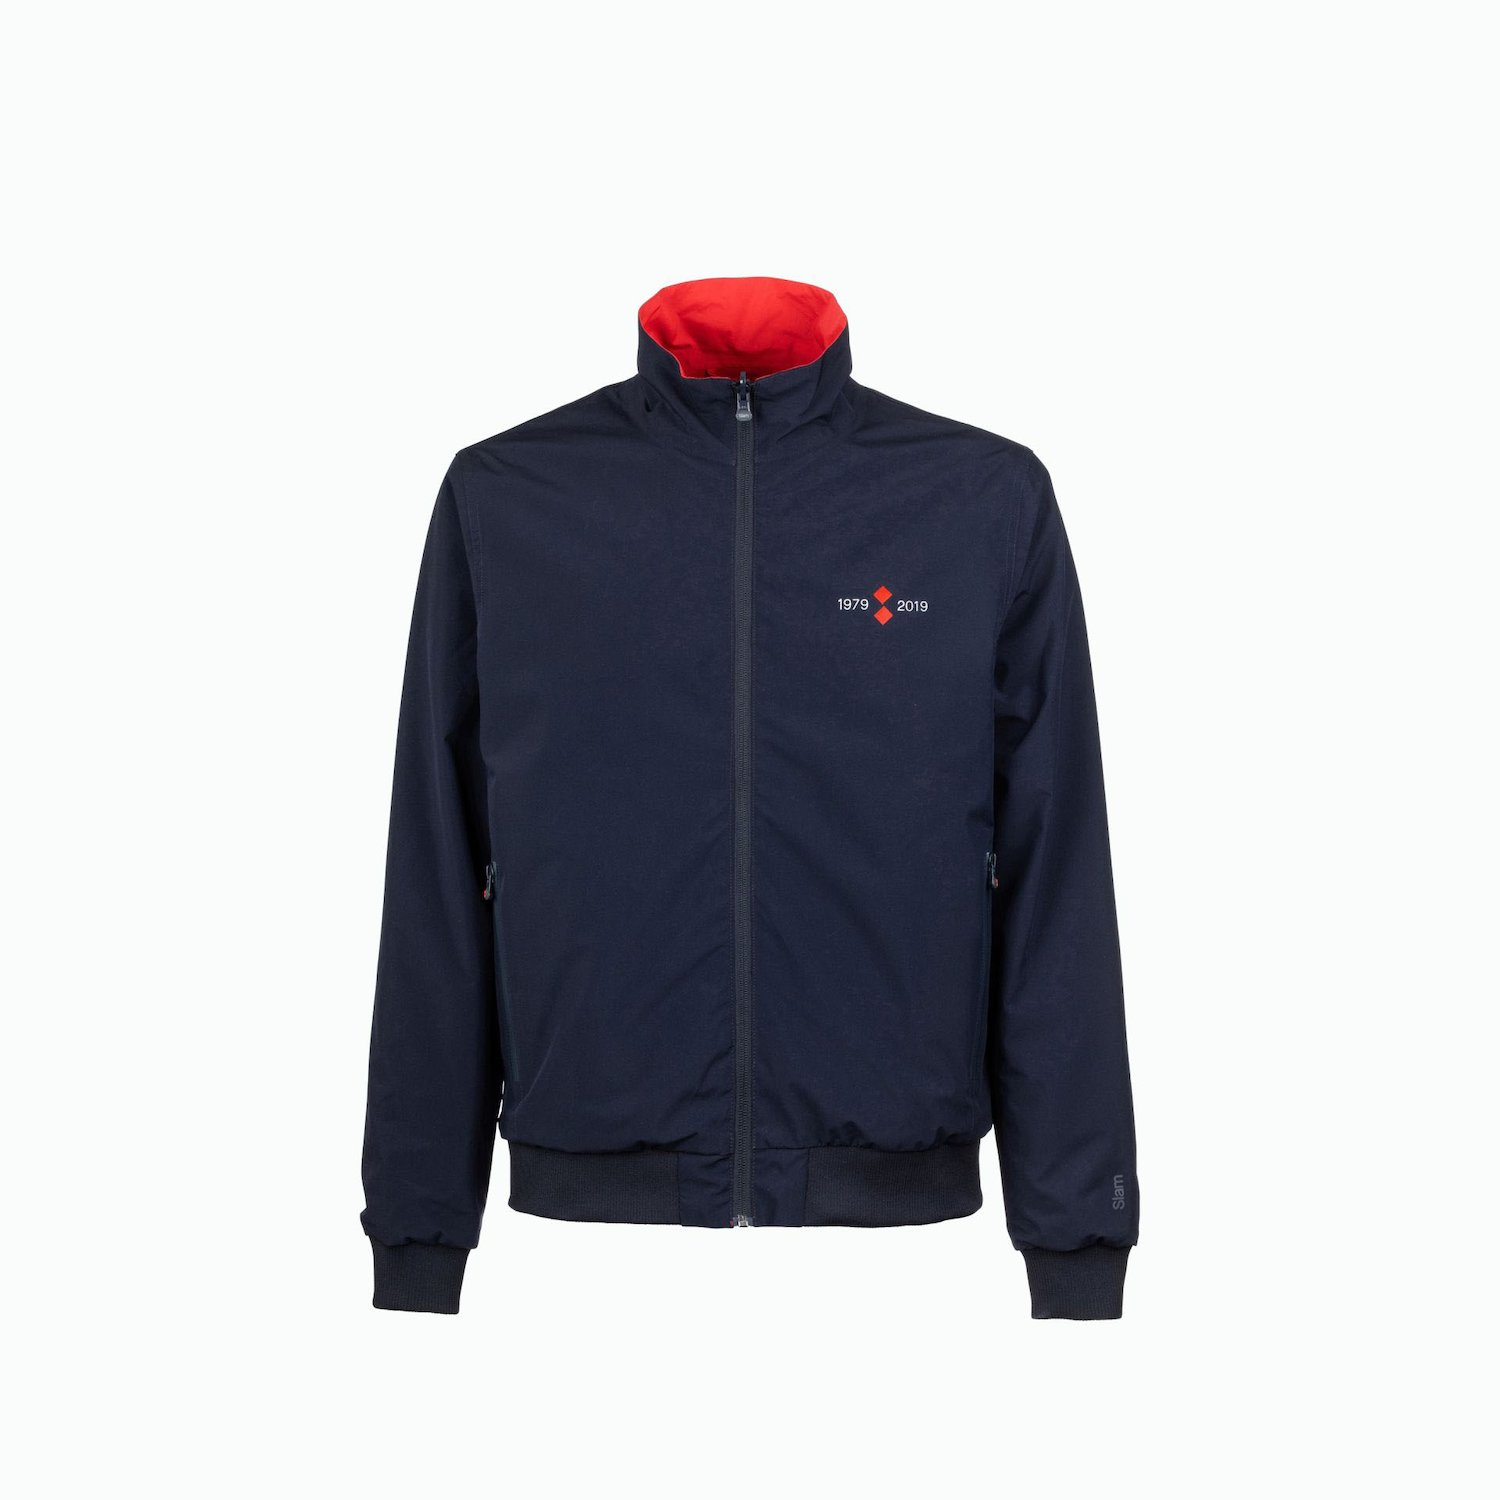 40th Short Jacket - Navy Blau